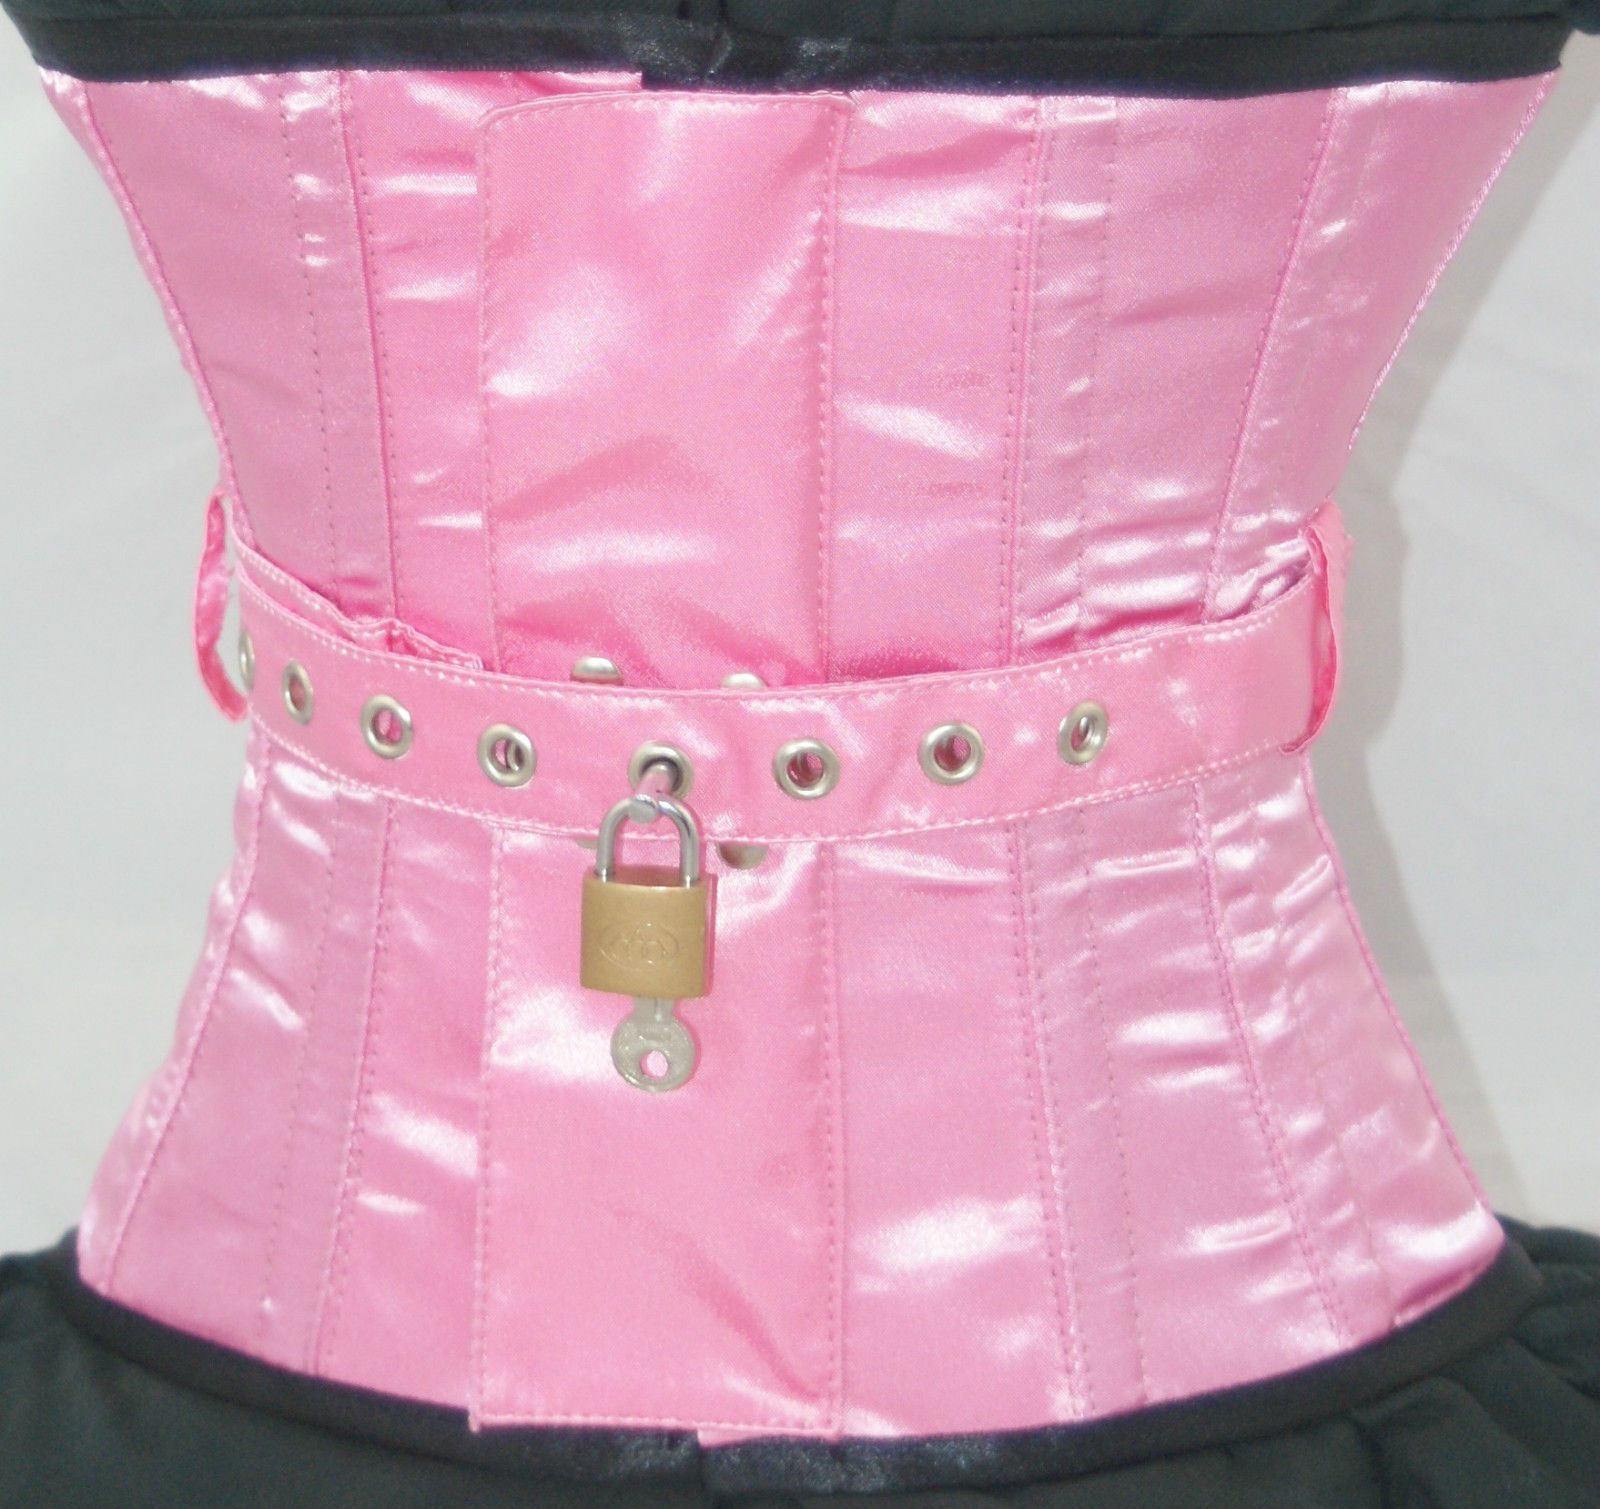 d5dc923cfb A locking pink corset... a dream! Oh how I wish!!